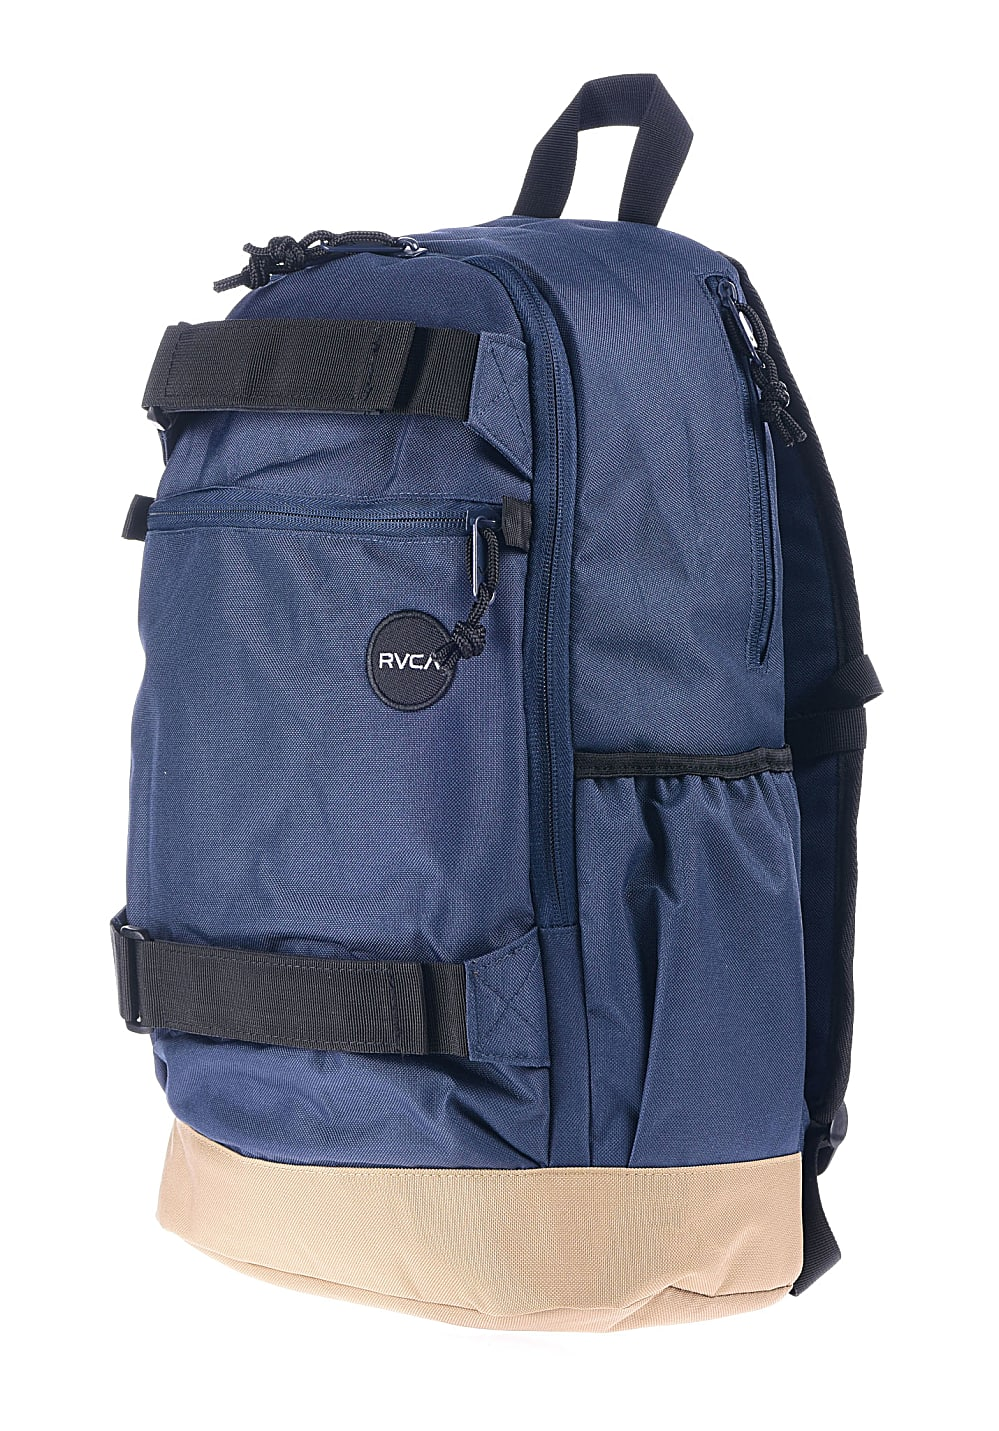 rvca push skate ii rucksack f r herren blau g nstig schnell einkaufen. Black Bedroom Furniture Sets. Home Design Ideas